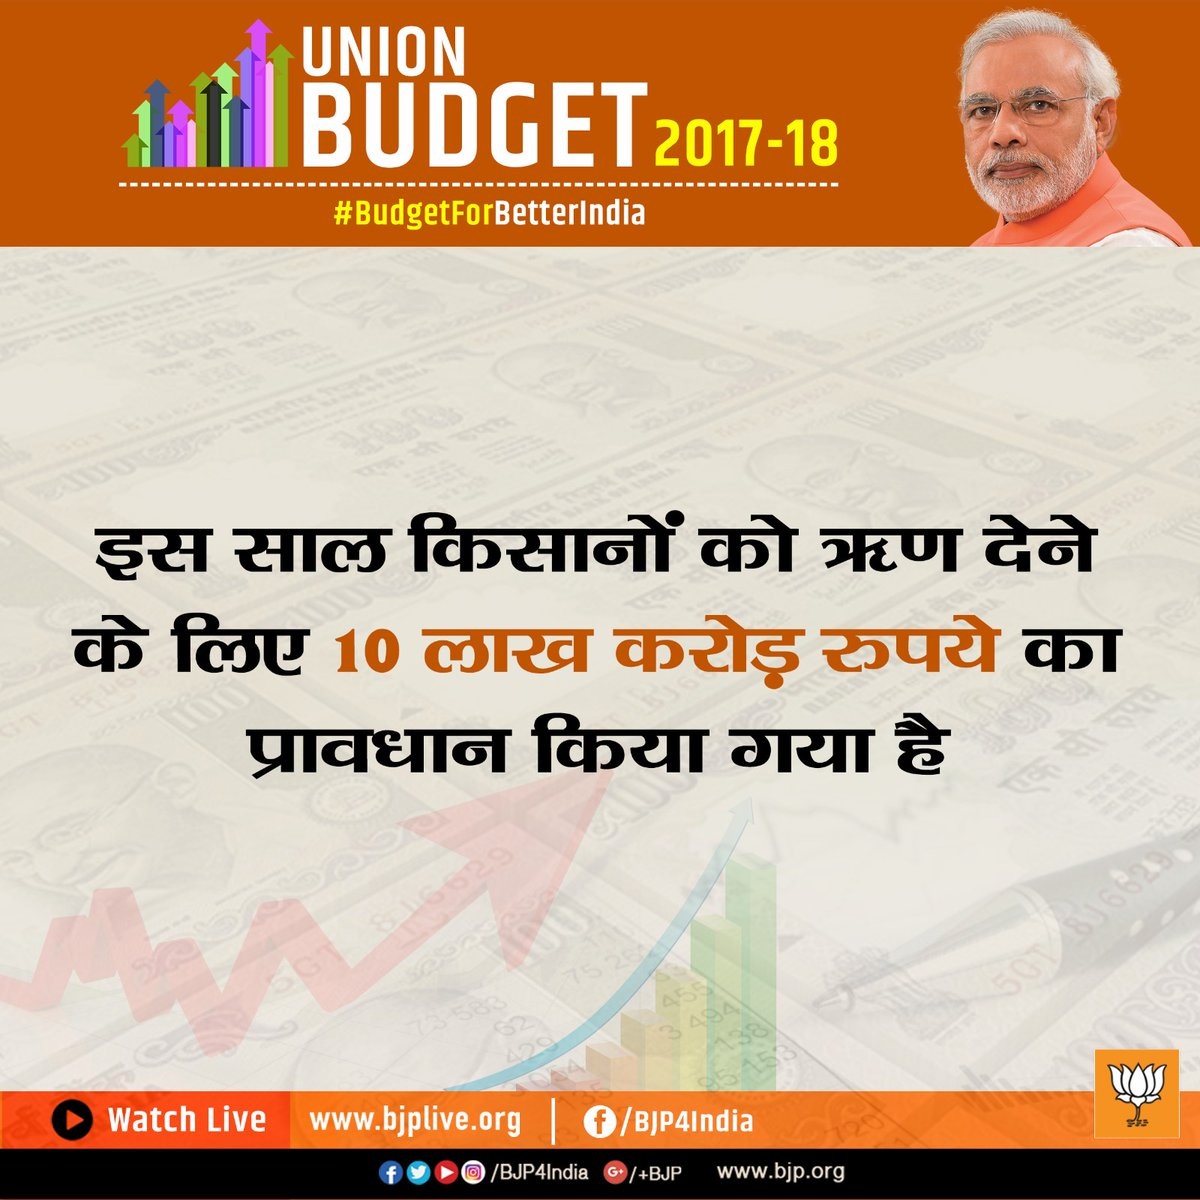 Budget For Better India